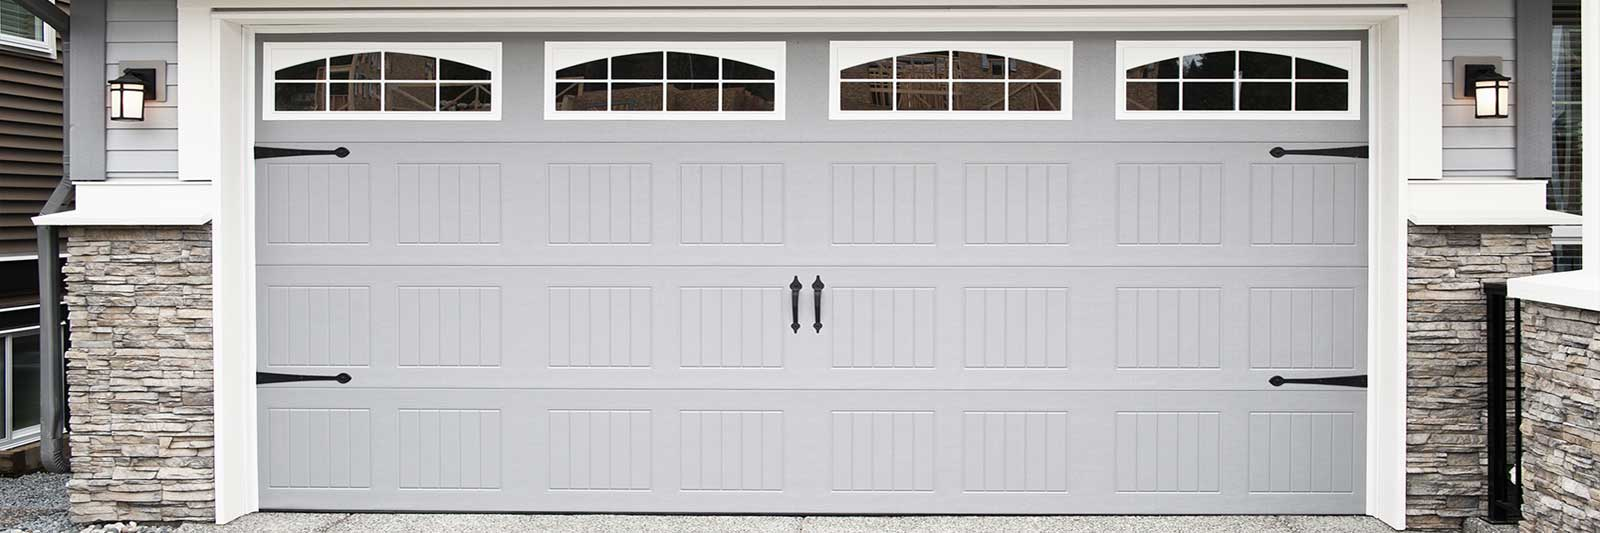 Garage Door Repair Ft Worth Tx On Track Garage Doors Make Your Own Beautiful  HD Wallpapers, Images Over 1000+ [ralydesign.ml]